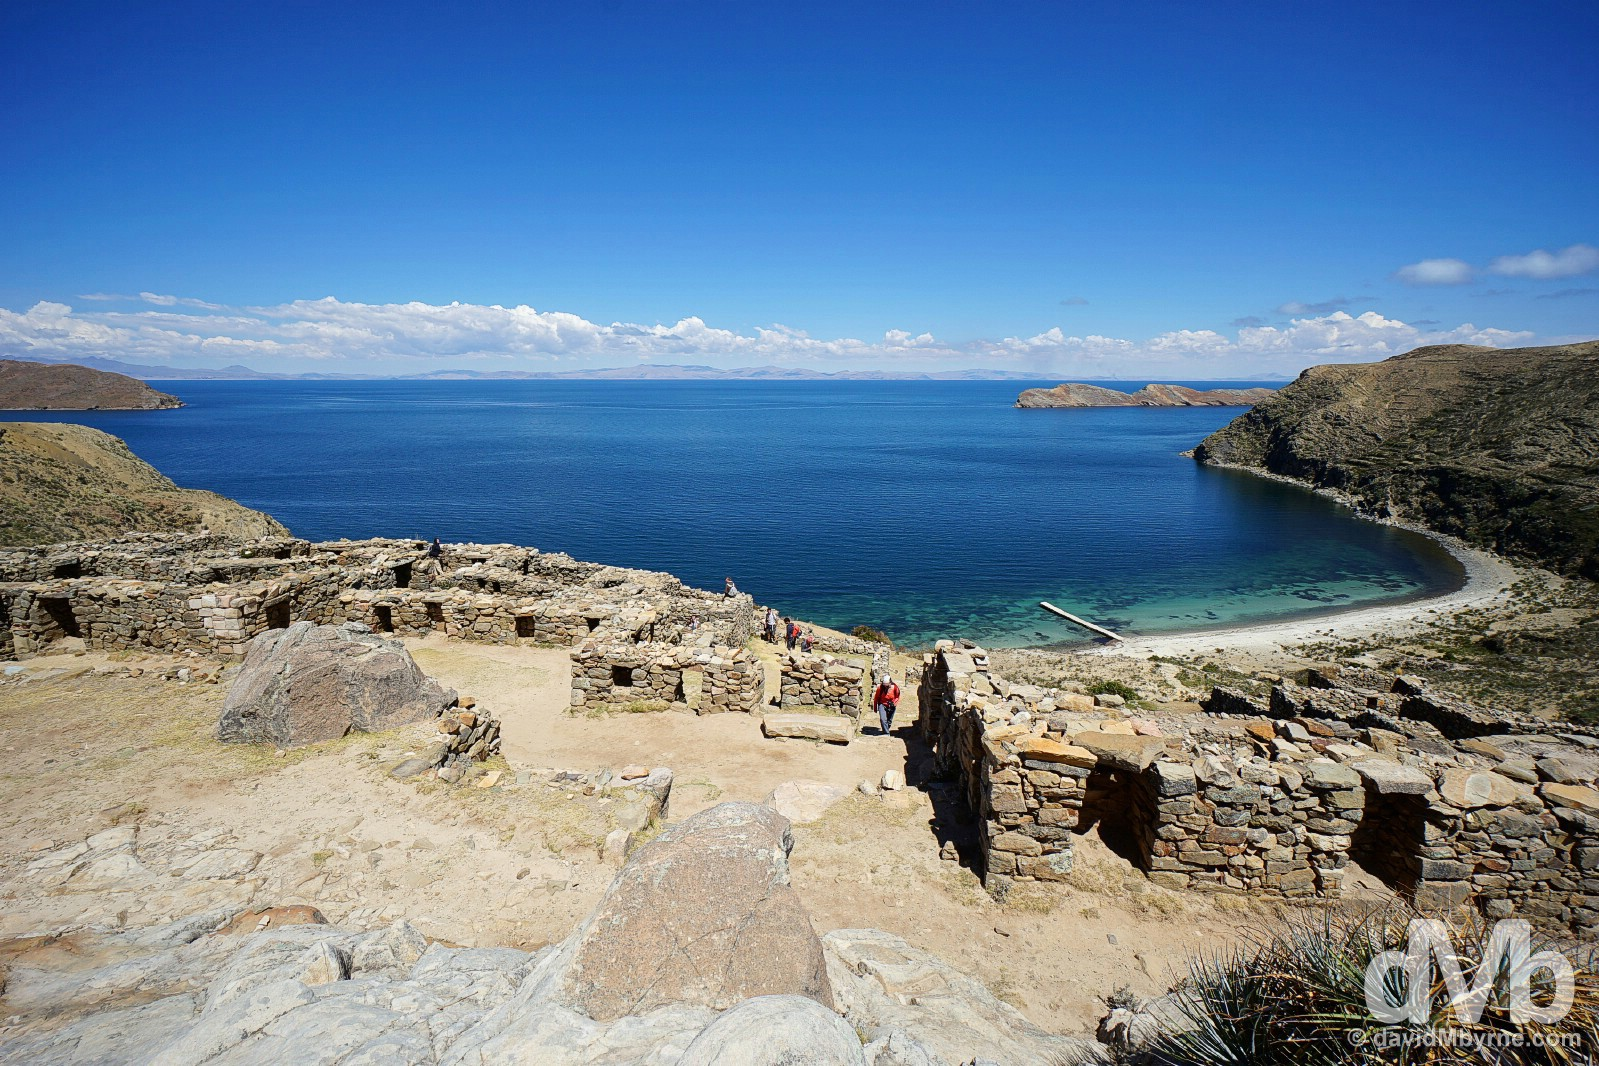 Inca ruins on Isla del Sol overlooking Lake Titicaca, Bolivia. August 24, 2015.